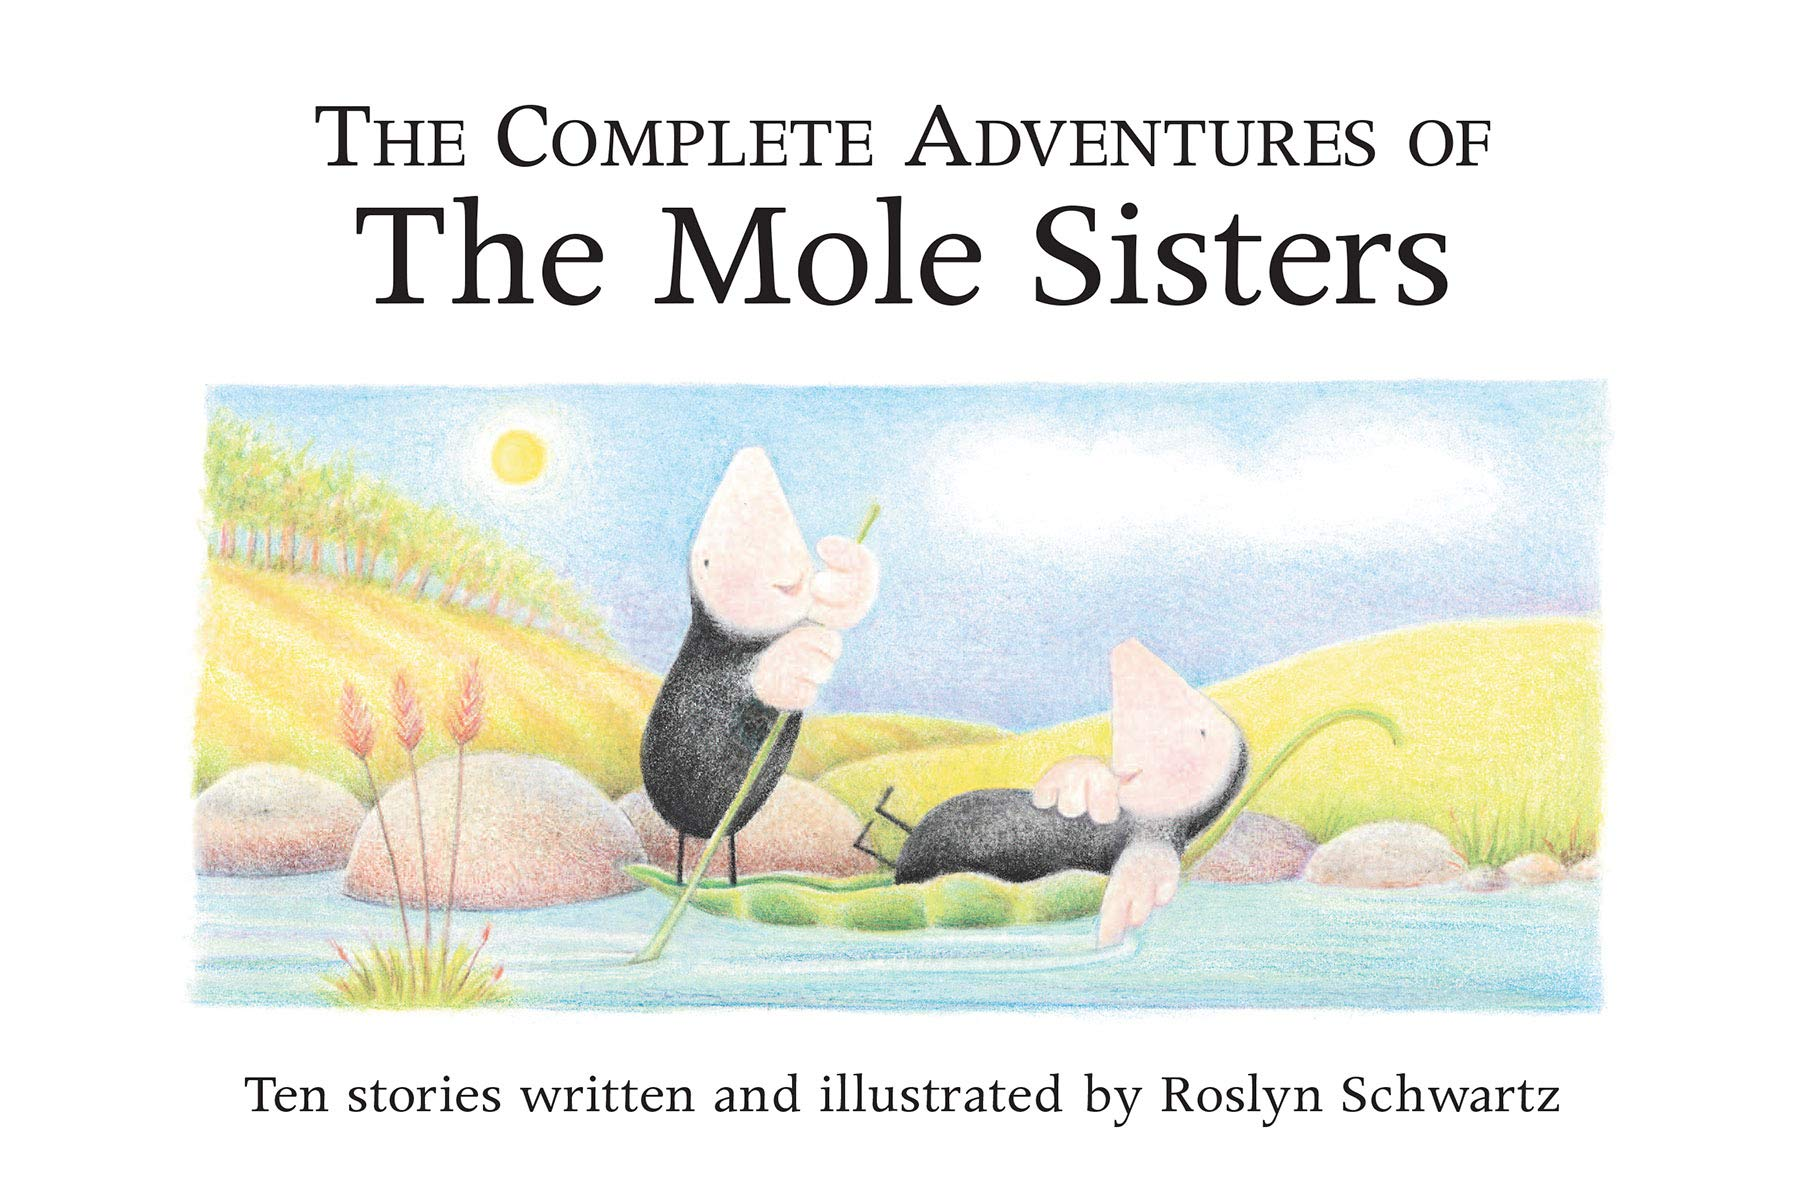 The Complete Adventures of the Mole Sisters